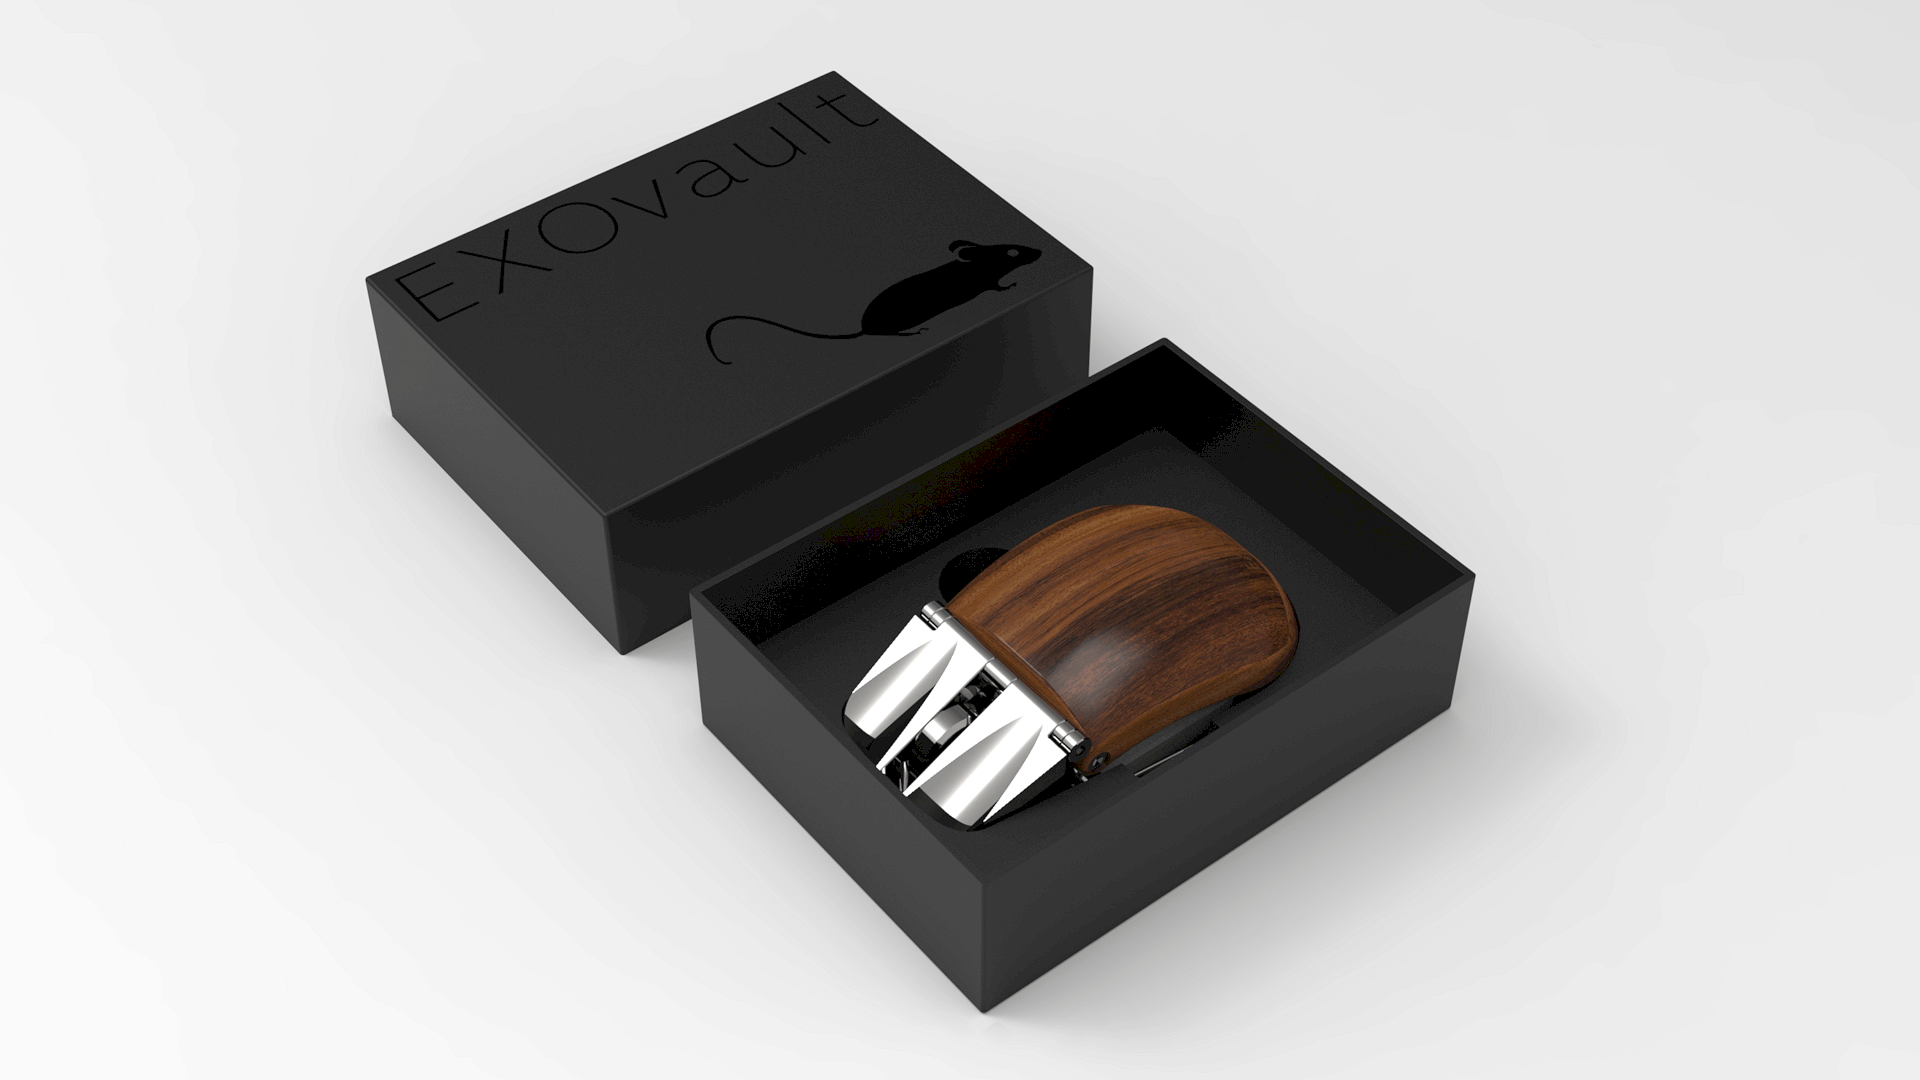 Exovault Mouse 3